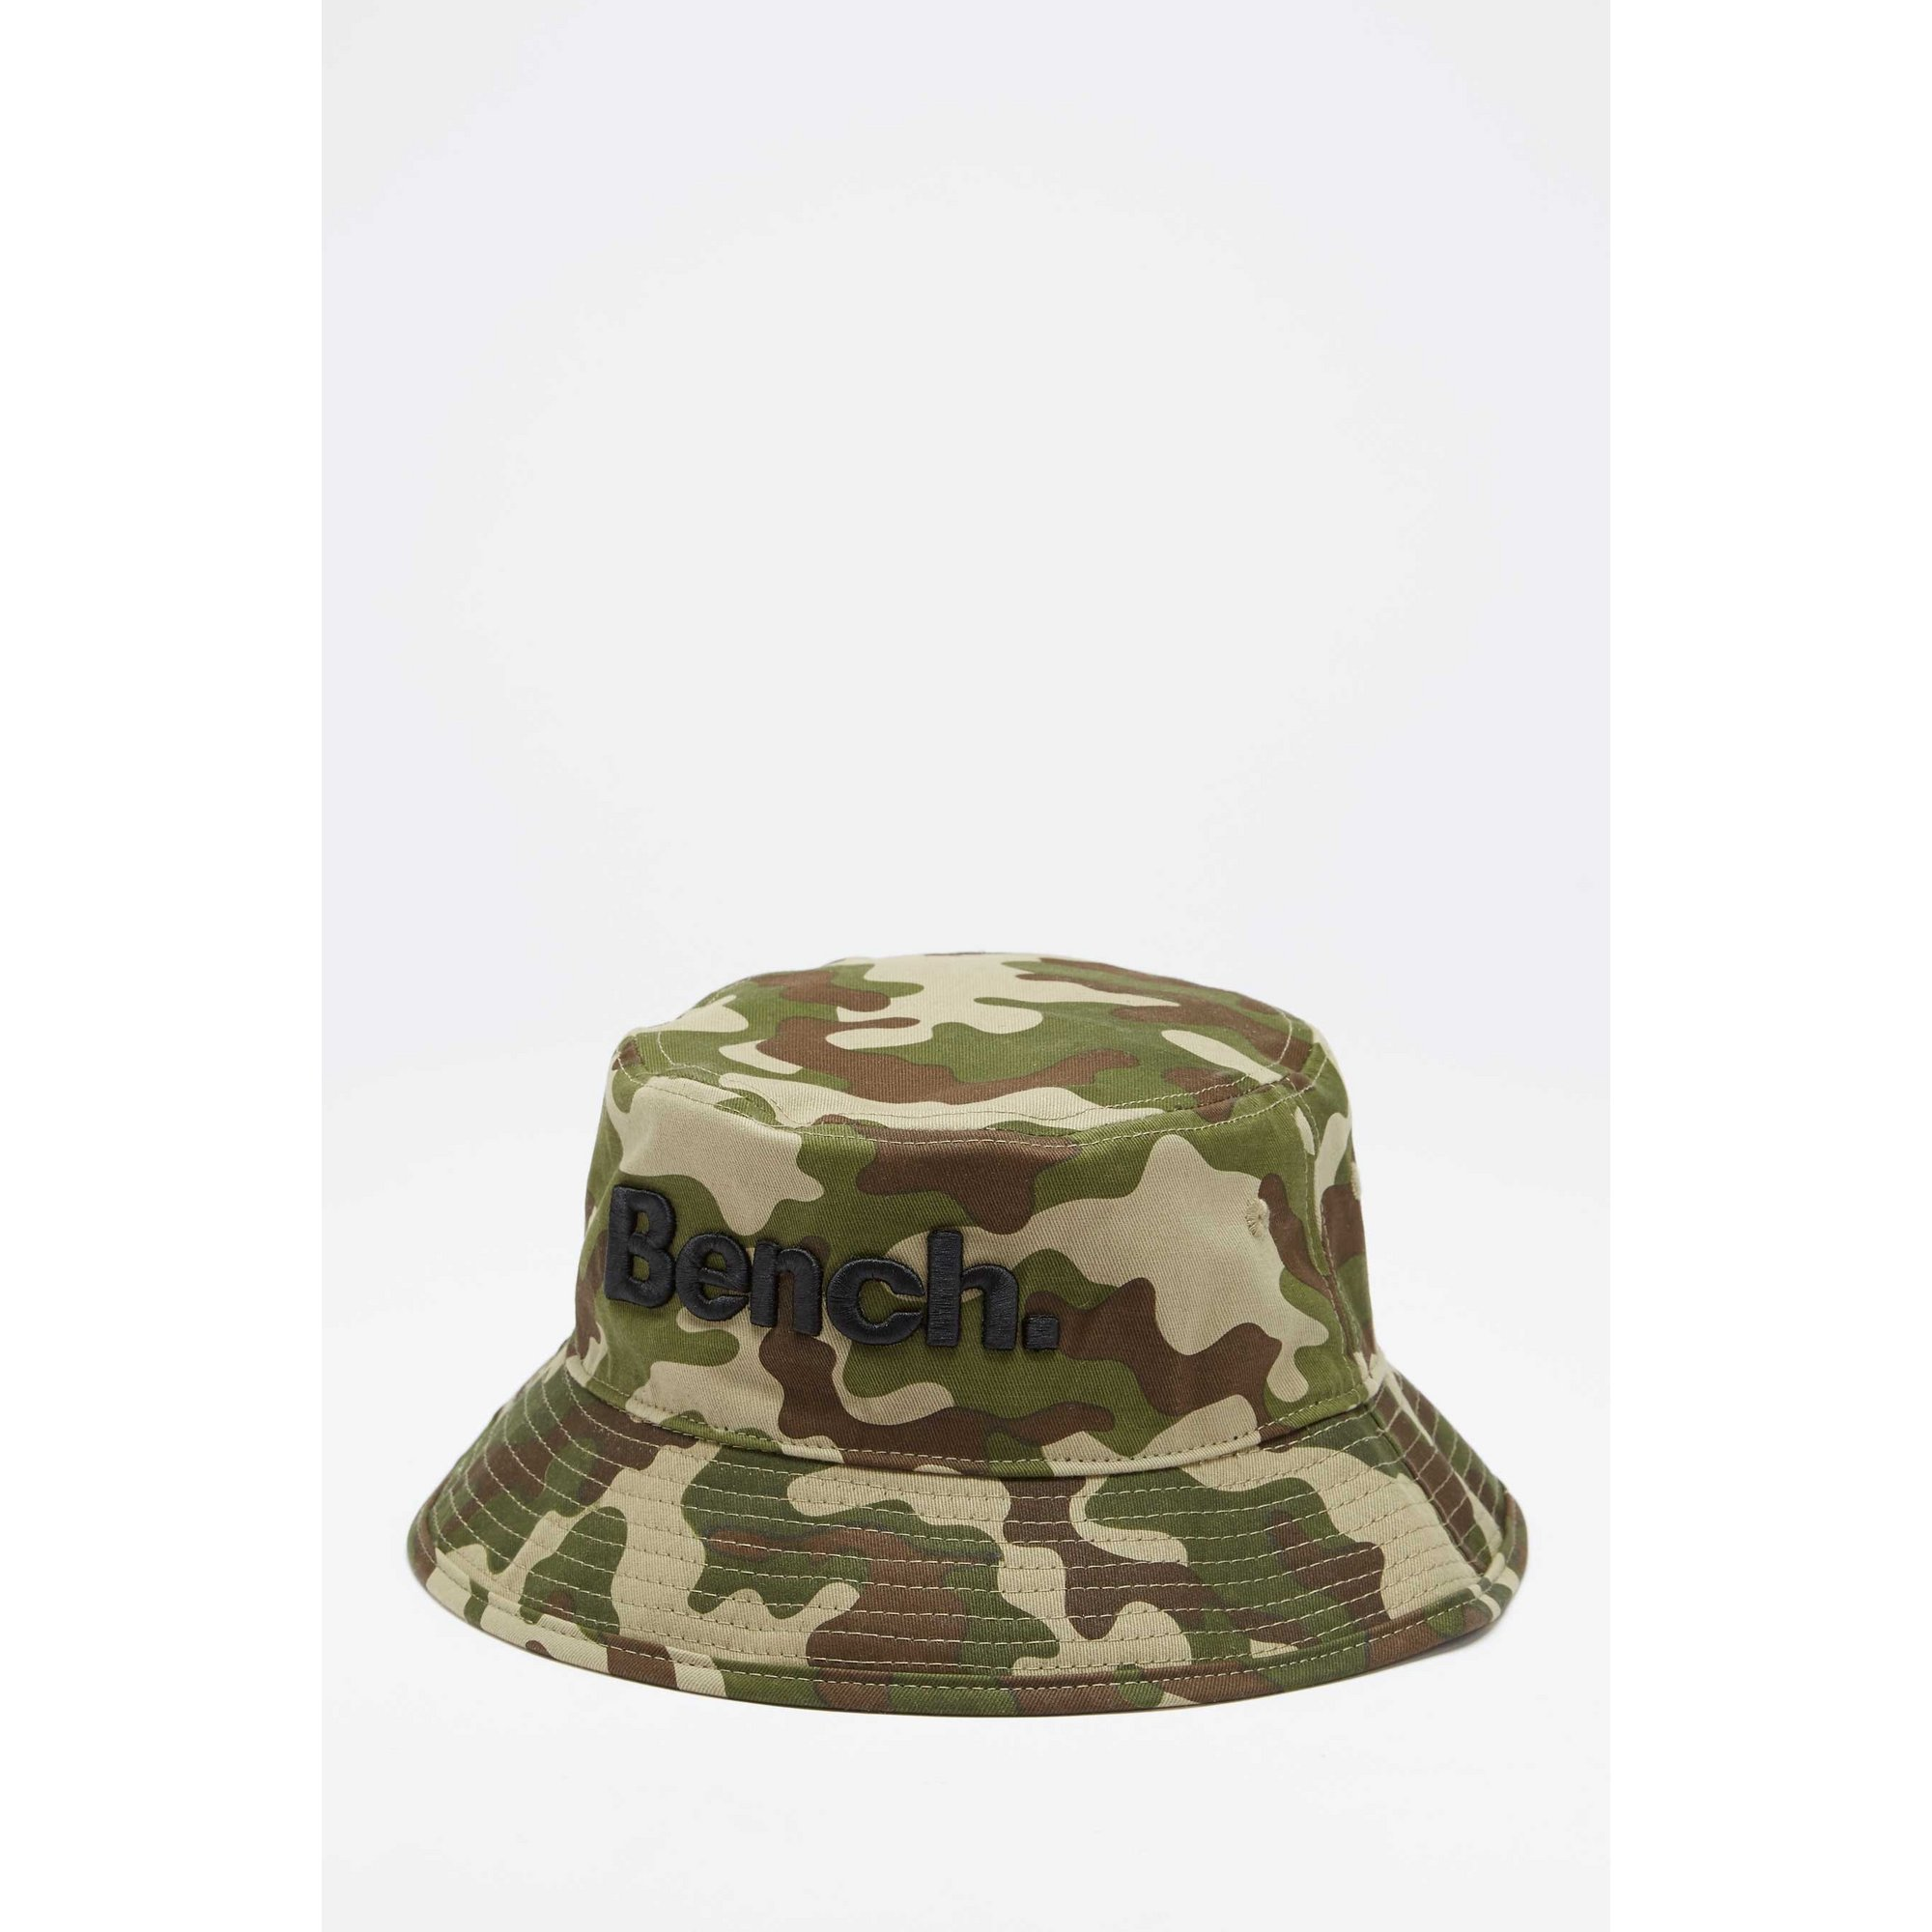 Image of Bench Embroidered Bucket Hat